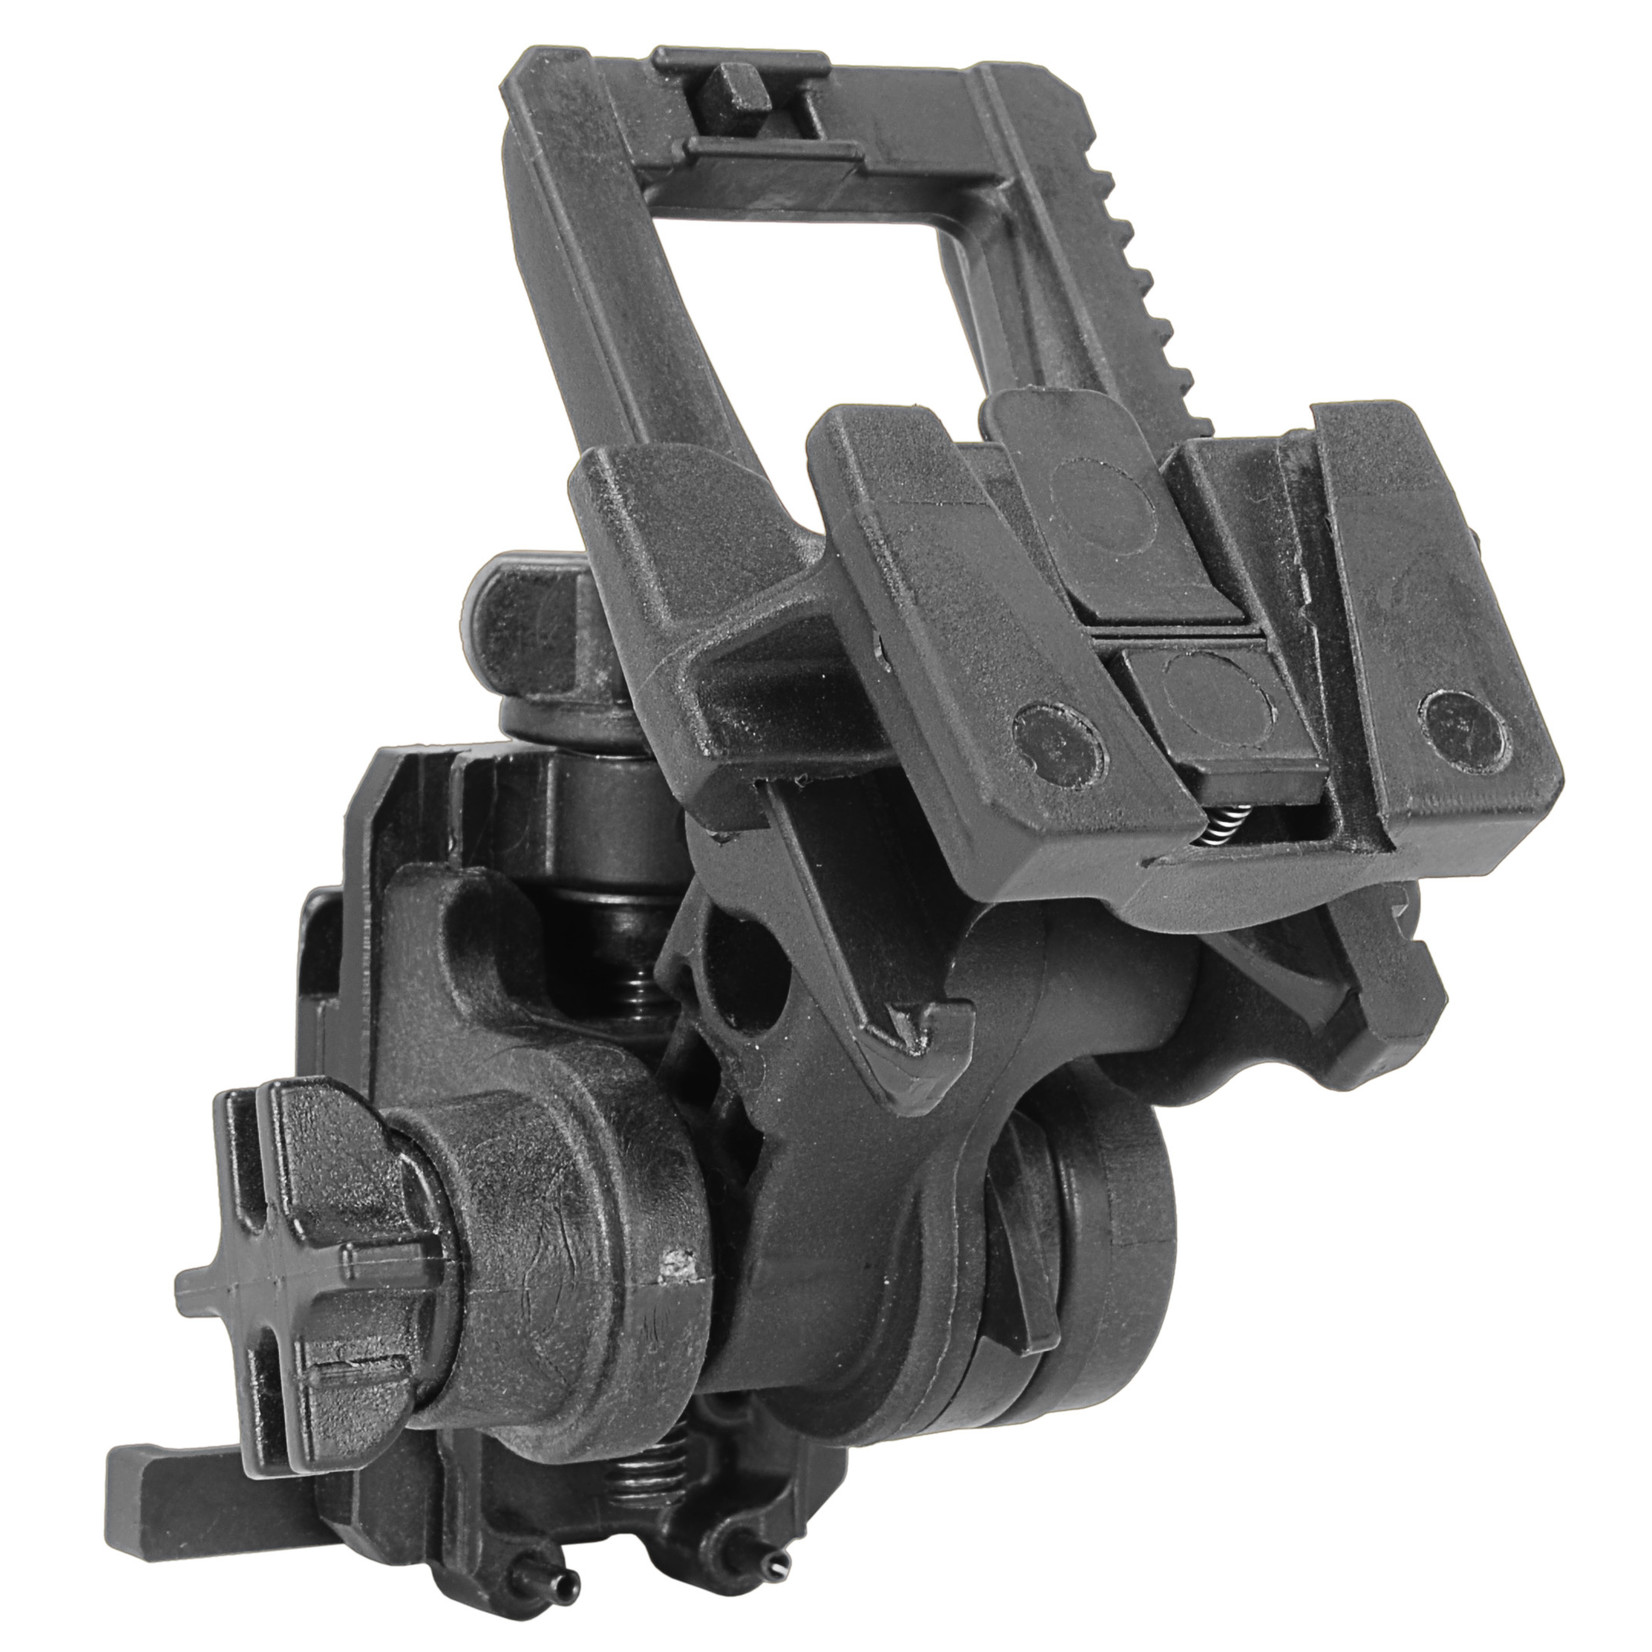 CADEX DEFENCE FLIP UP NIGHT VISION  MOUNT